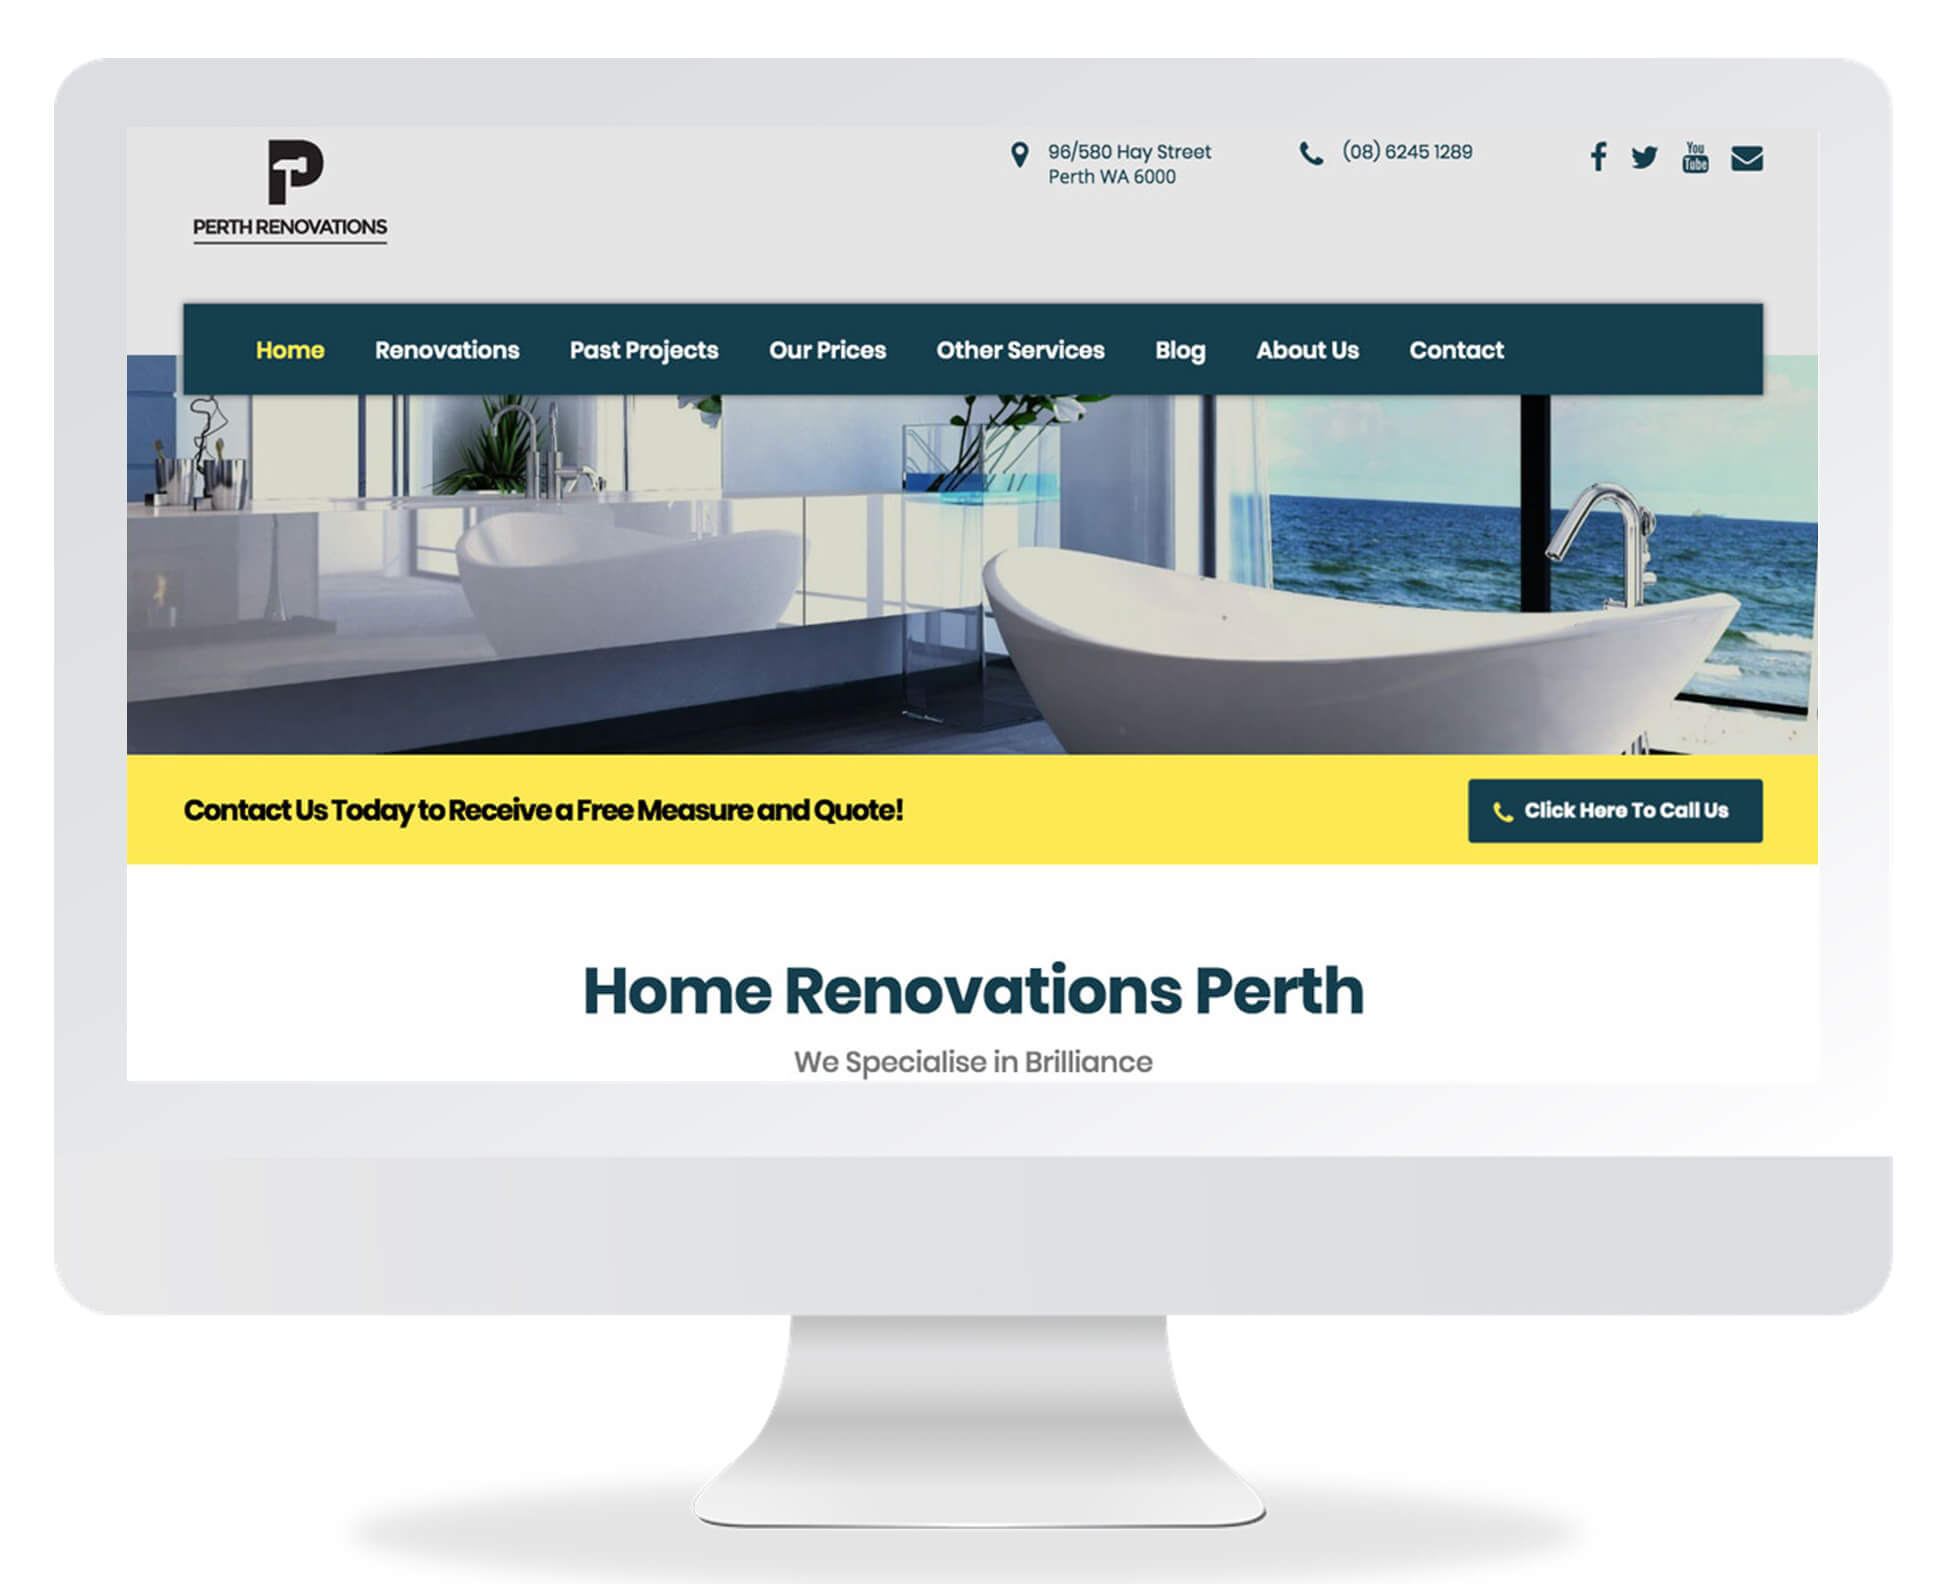 Perth Renovations Co Brad Russell Seo Case Study